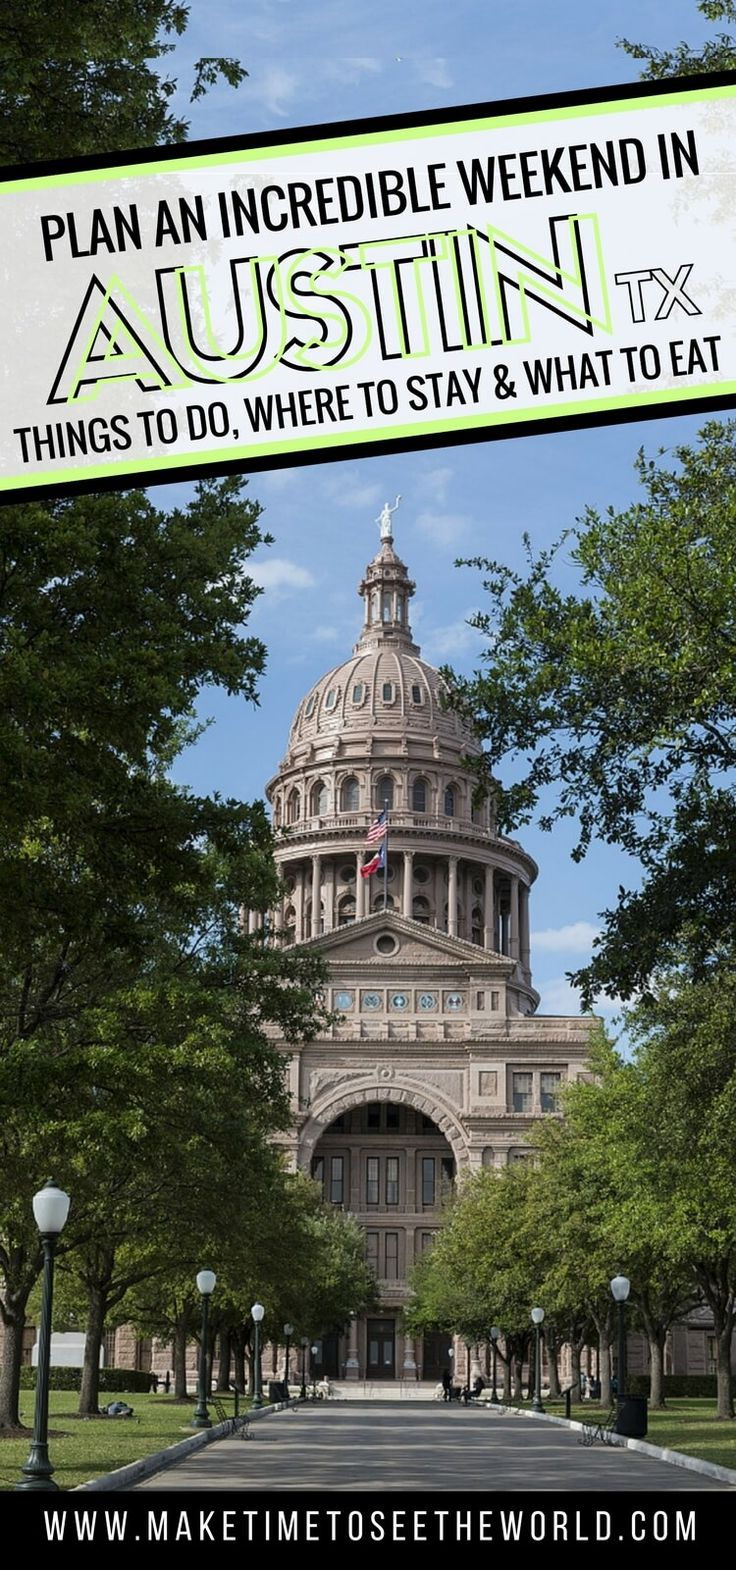 Planning 48 Hours in Austin? This guide is for you! It's packed full of things to do in Austin + where to stay & eat to help you plan a great weekend away **** Austin   Austin Texas   Austin Things to do   Austin Tesax Things to do   Things to do in Austin Texas   Weekend in Austin   What to do in Austin   Tourist attarctions in Austin Tx   Austin Texas Tourism   Places to go in Austin #Austin #Texas #USA